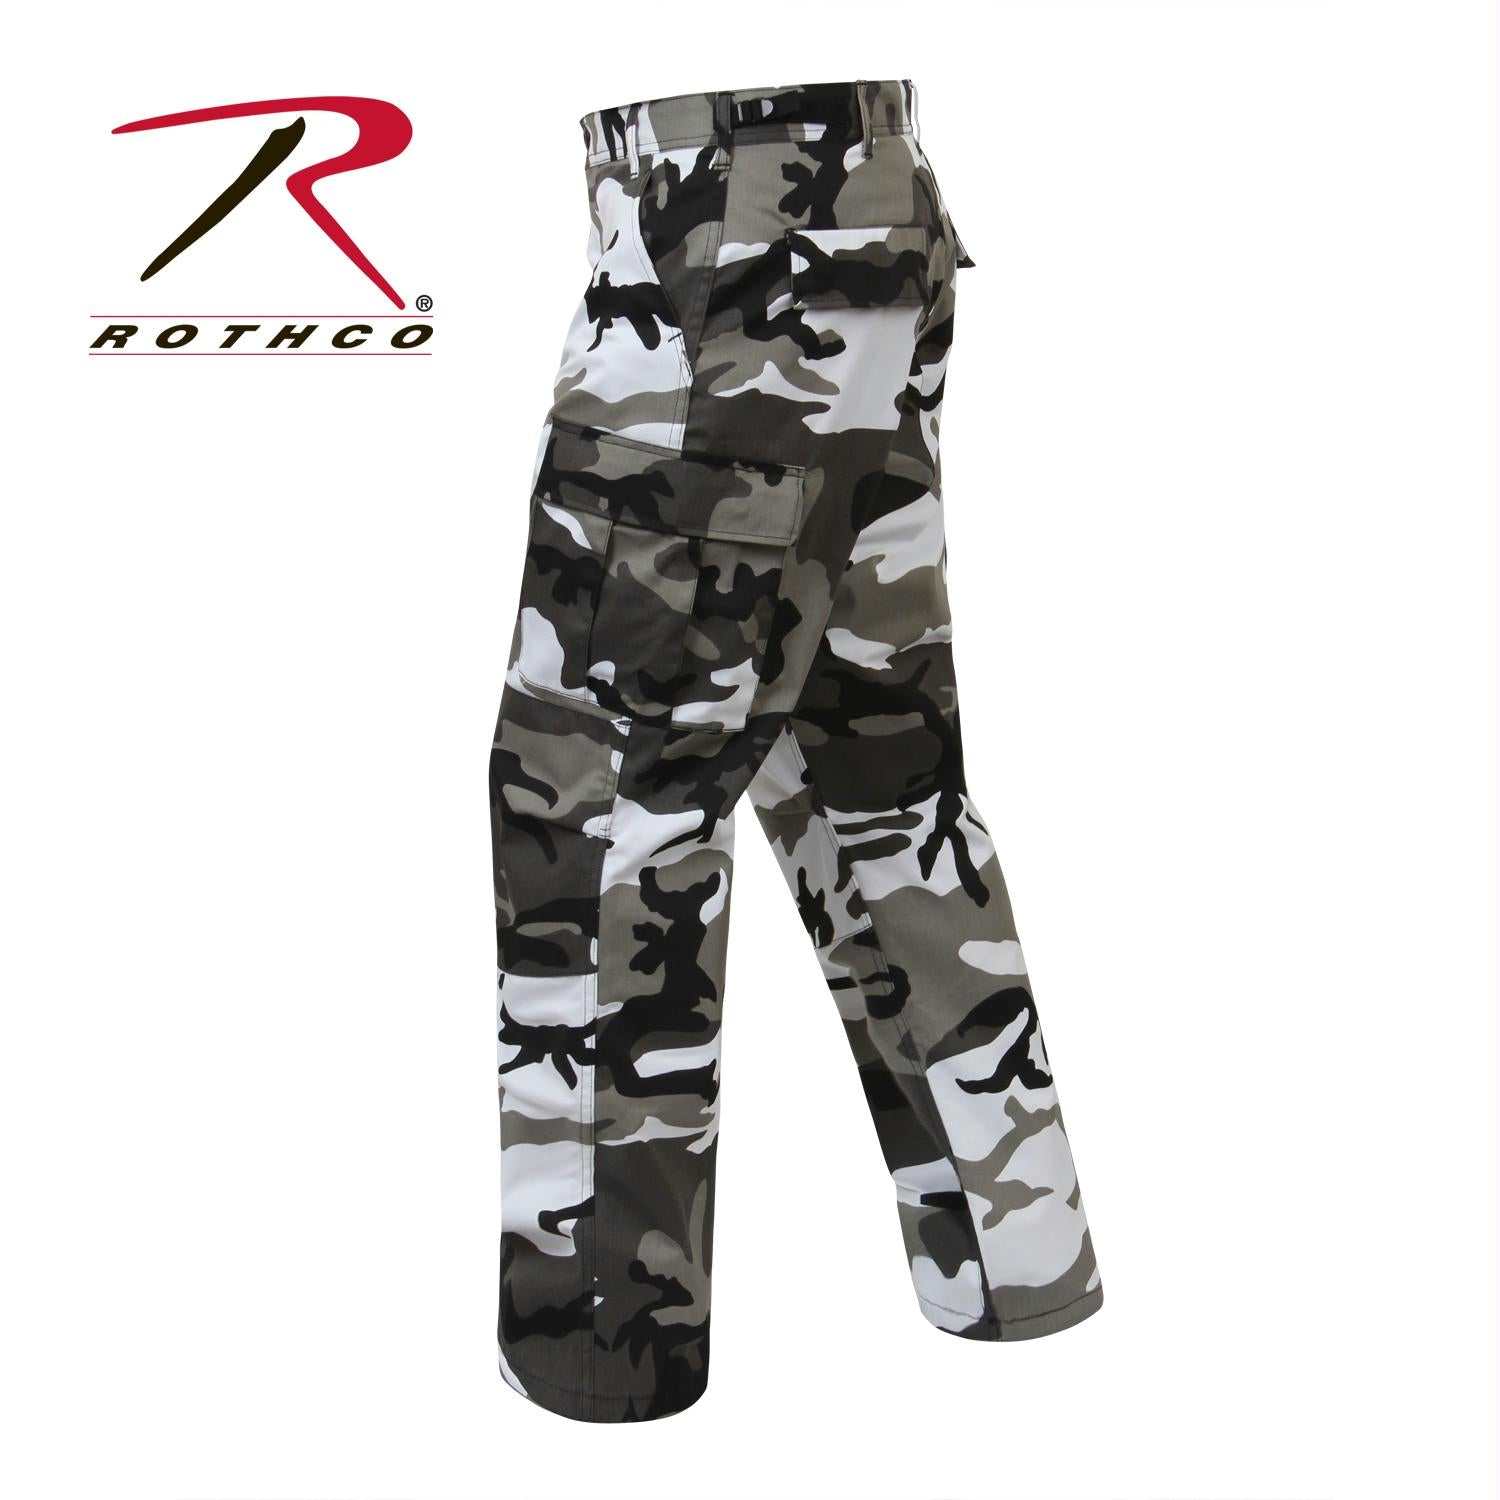 Rothco Color Camo Tactical BDU Pant - City Camo / L - Long (35